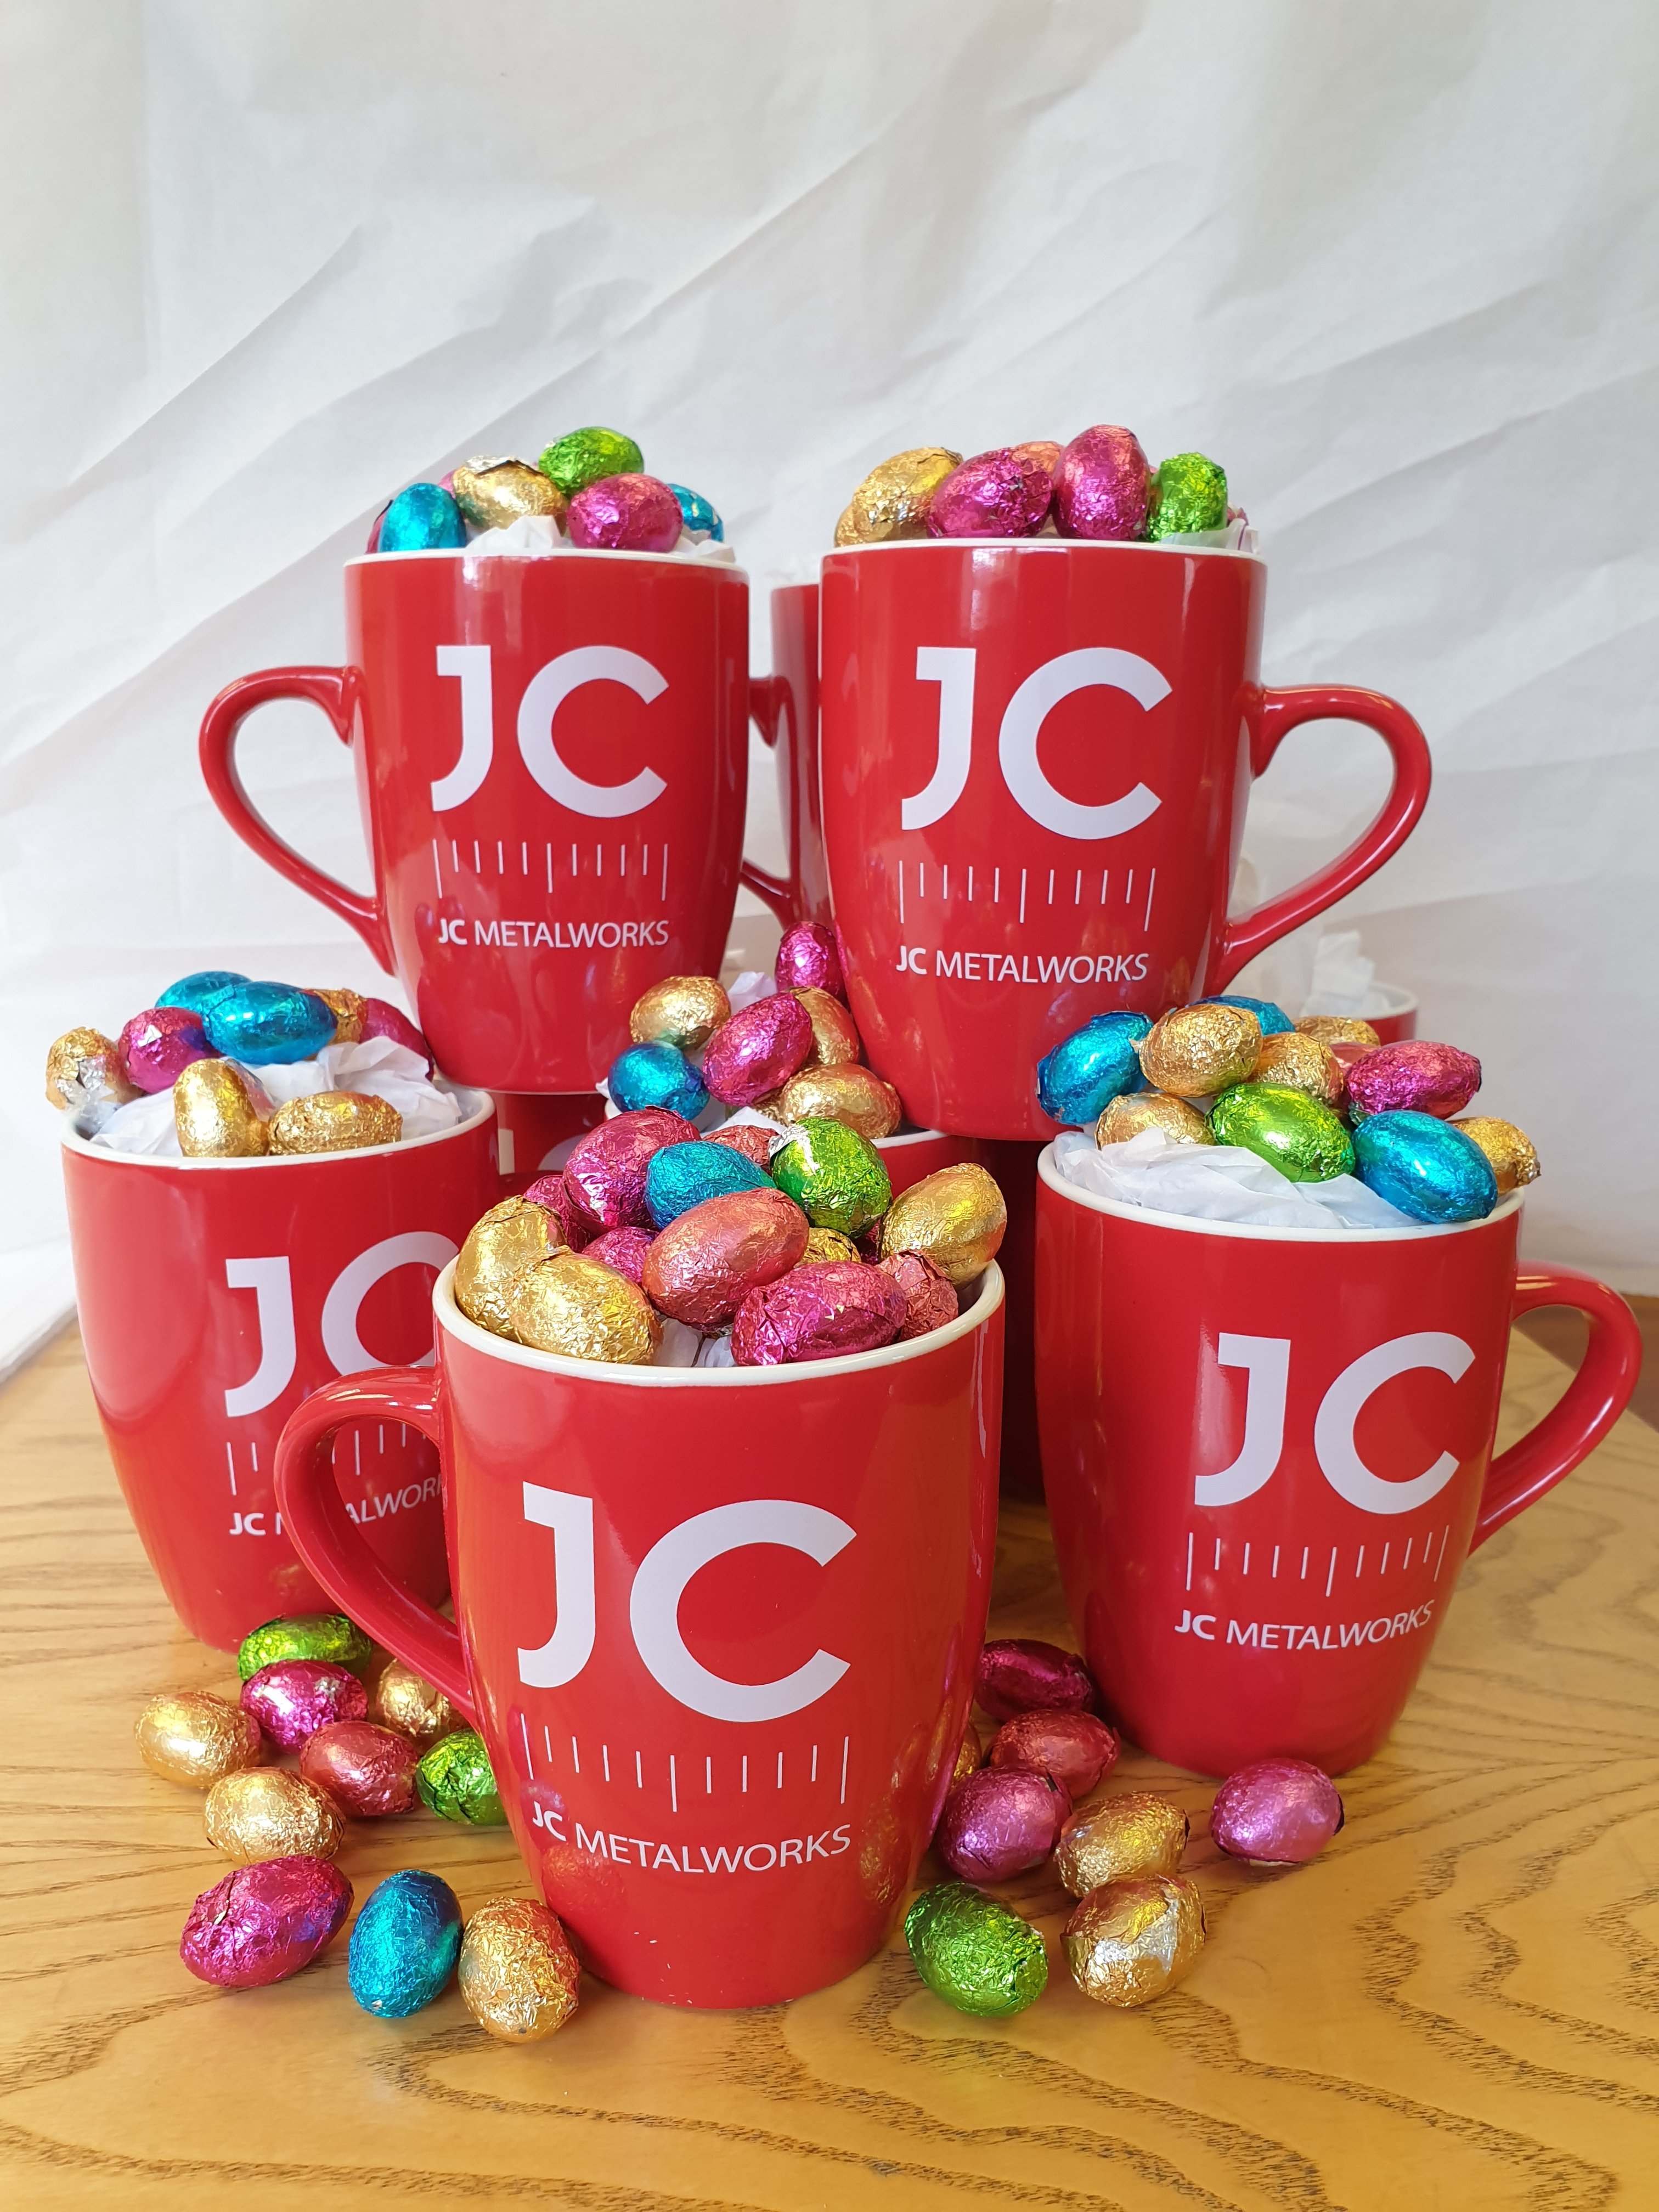 Presenting: JC Metalworks Easter Gifts!